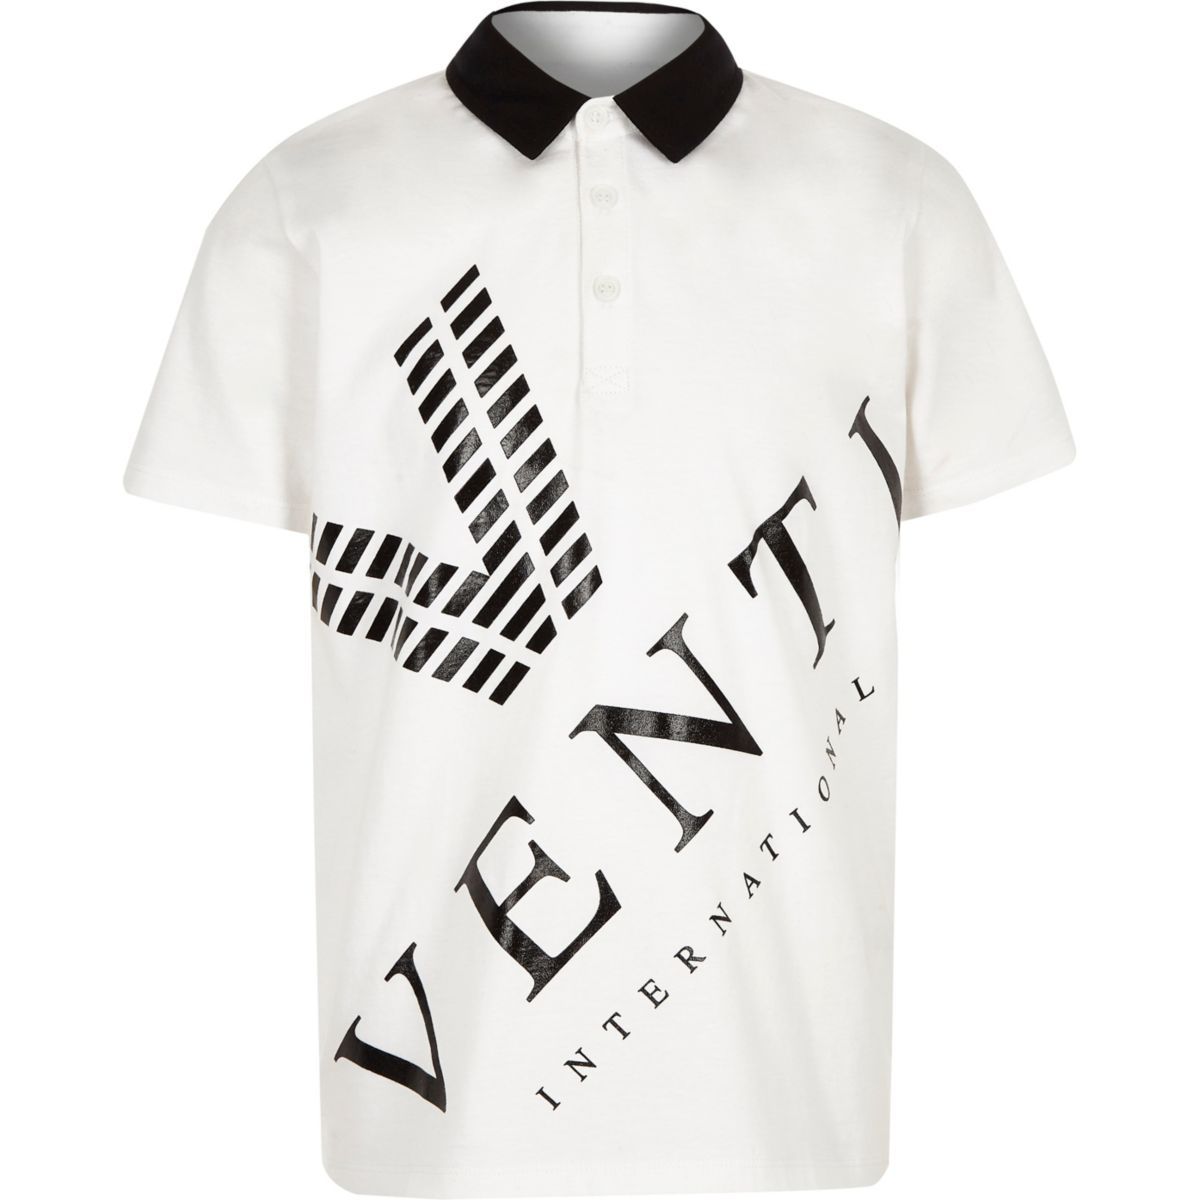 Boys white 'Venti' print polo shirt